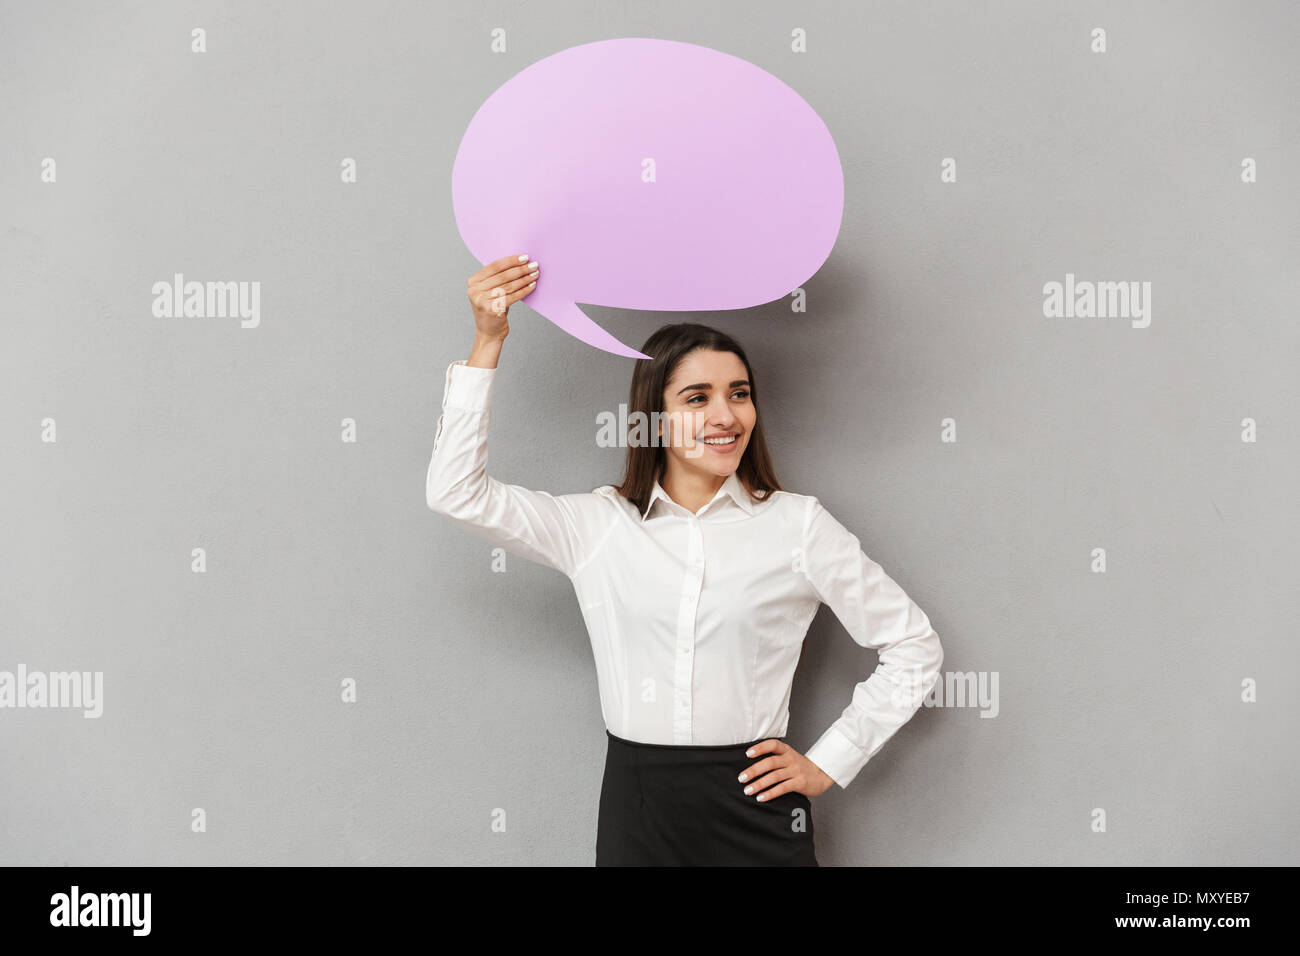 Photo of joyous woman in white shirt and black skirt looking aside with smile while holding copyspace bubble for text isolated over gray background - Stock Image